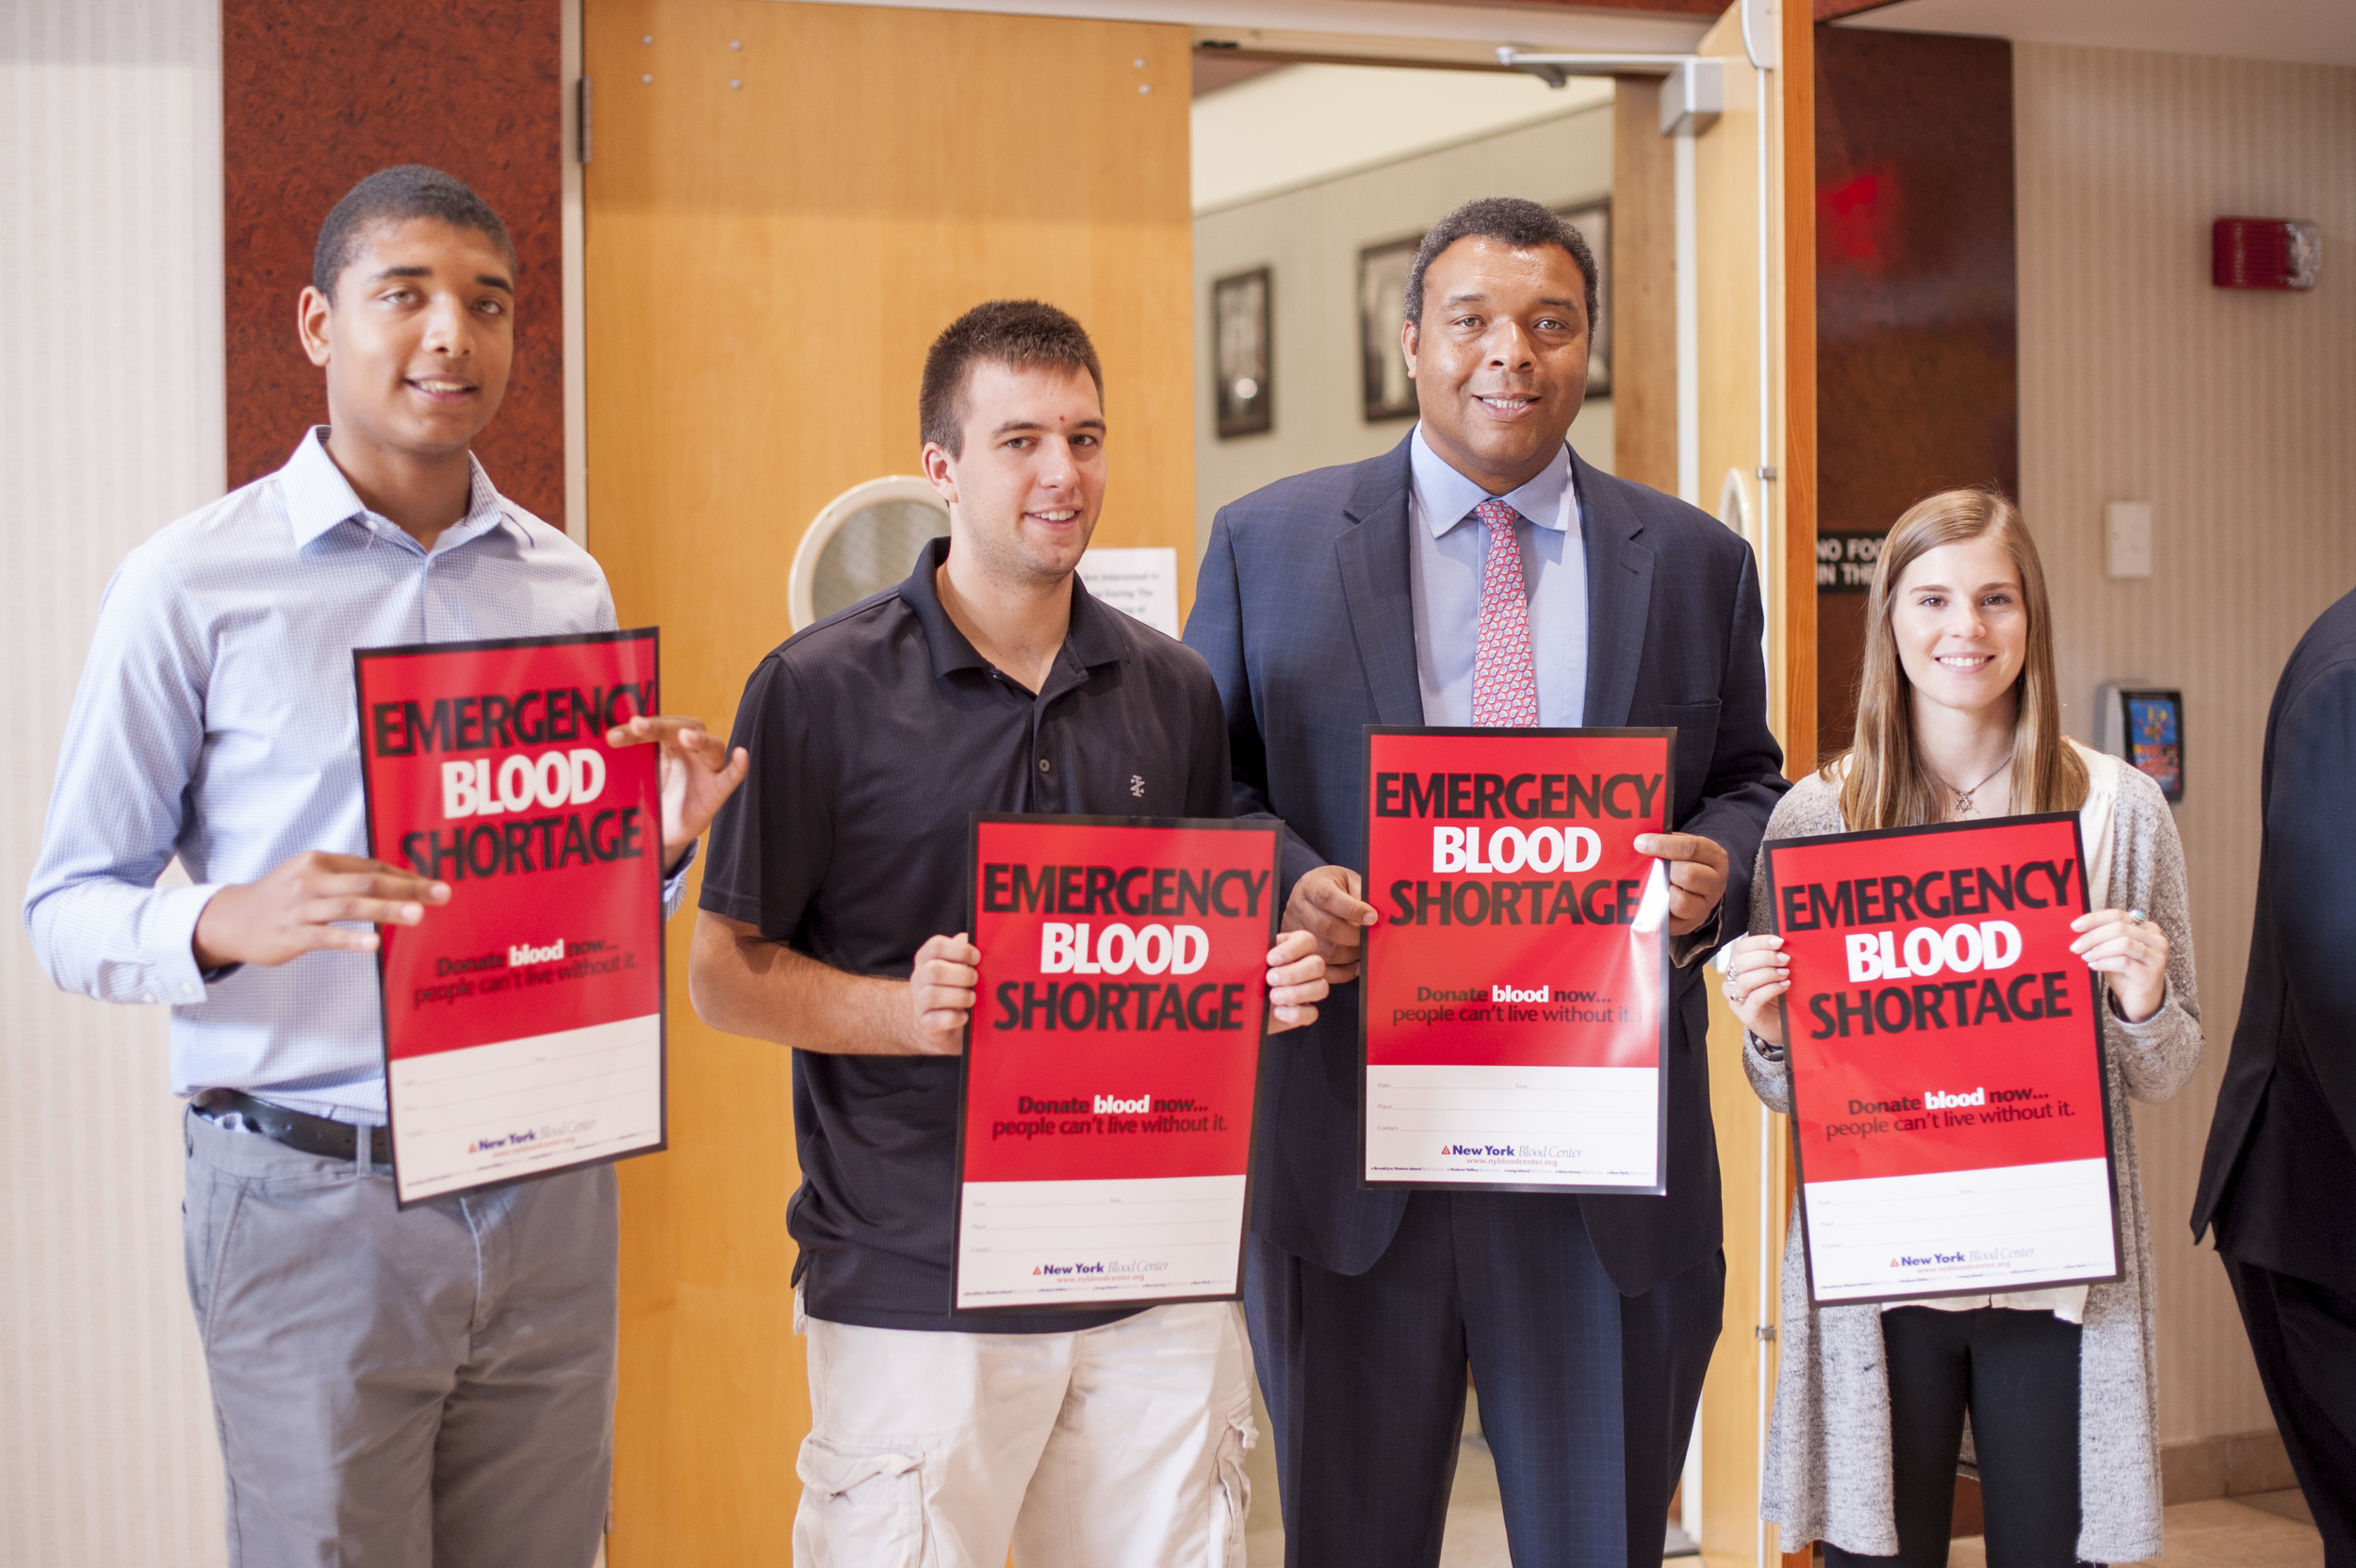 """Suffolk   Legislator William """"Doc"""" Spencer announces a blood emergency on Friday. Spencer is pictured with interns, from left: Robbie Spencer, who's also the legislator's son; Alex Noon; and Hannah Willen."""